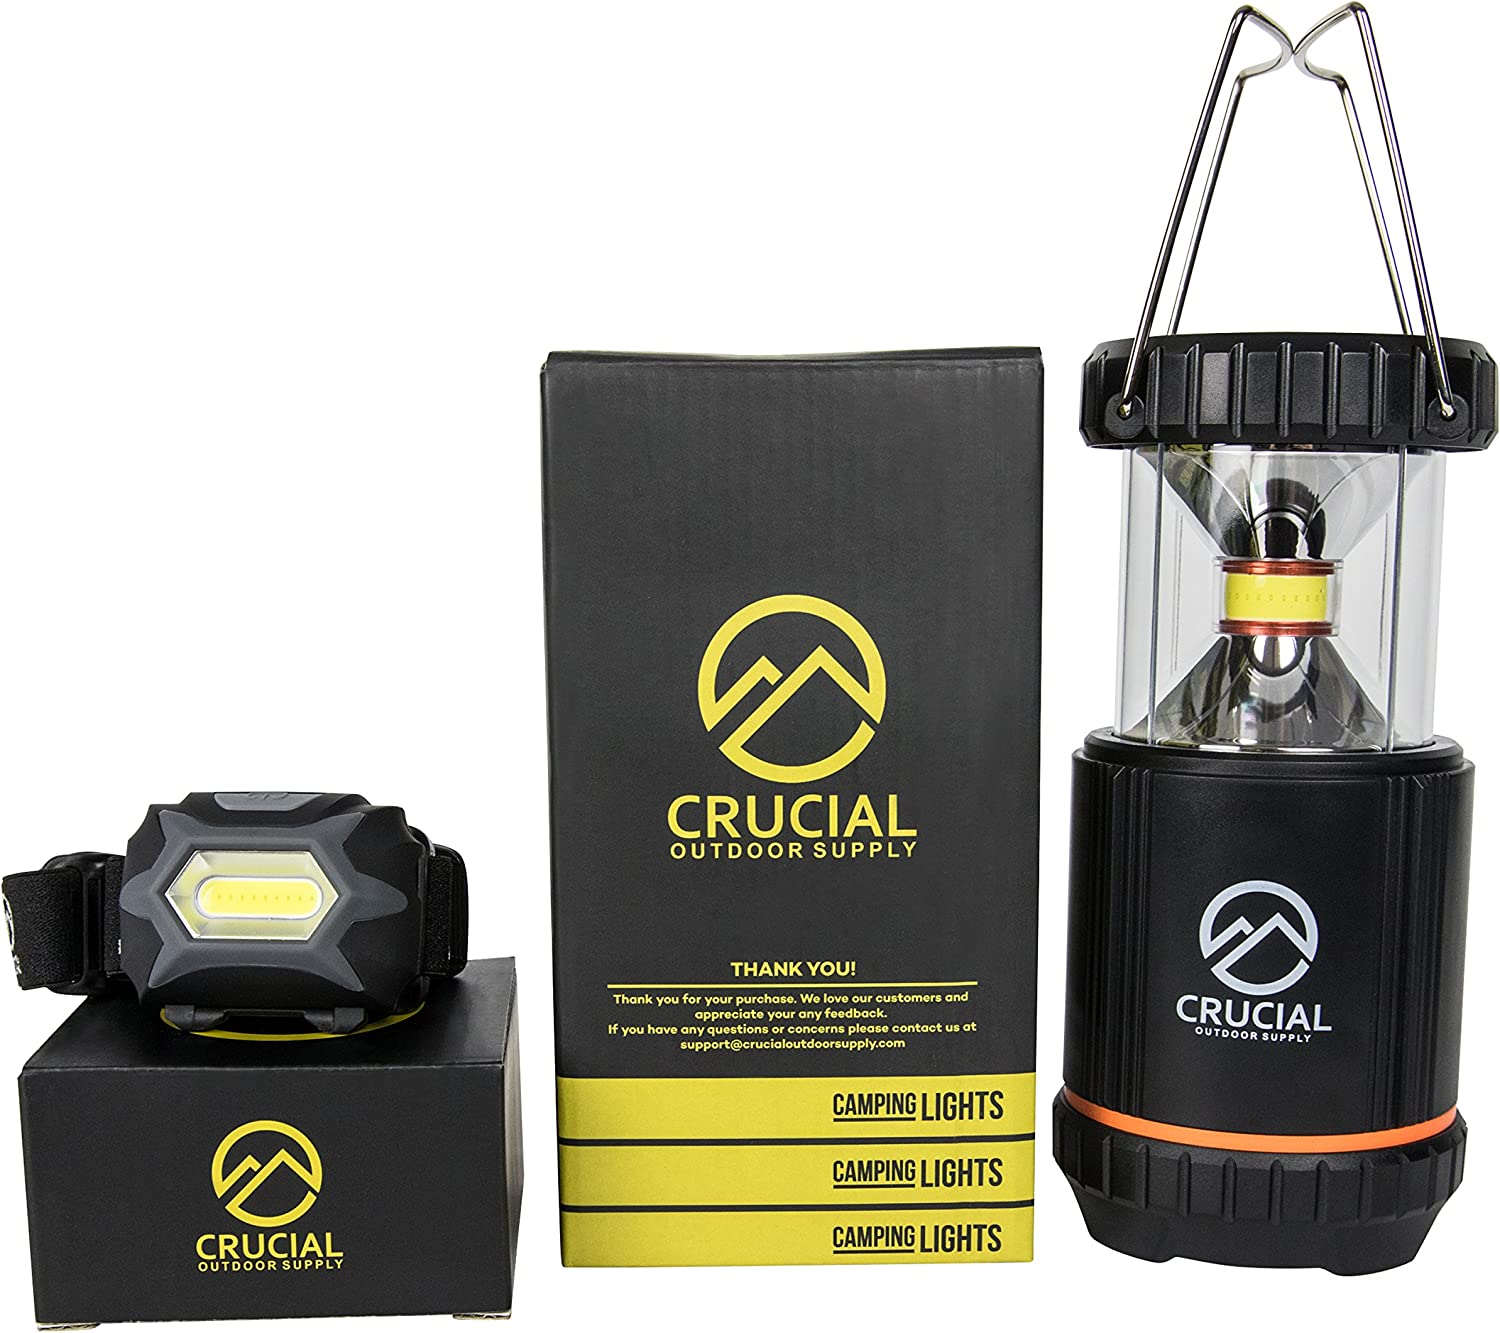 Ultimate LED Camping Accessories Lantern Bundle with Powerful Patented COB Lamp and Headlamp- Survival Kit Gear for Emergencies. Working Light, Reading Light – Great for all Outdoor Activities